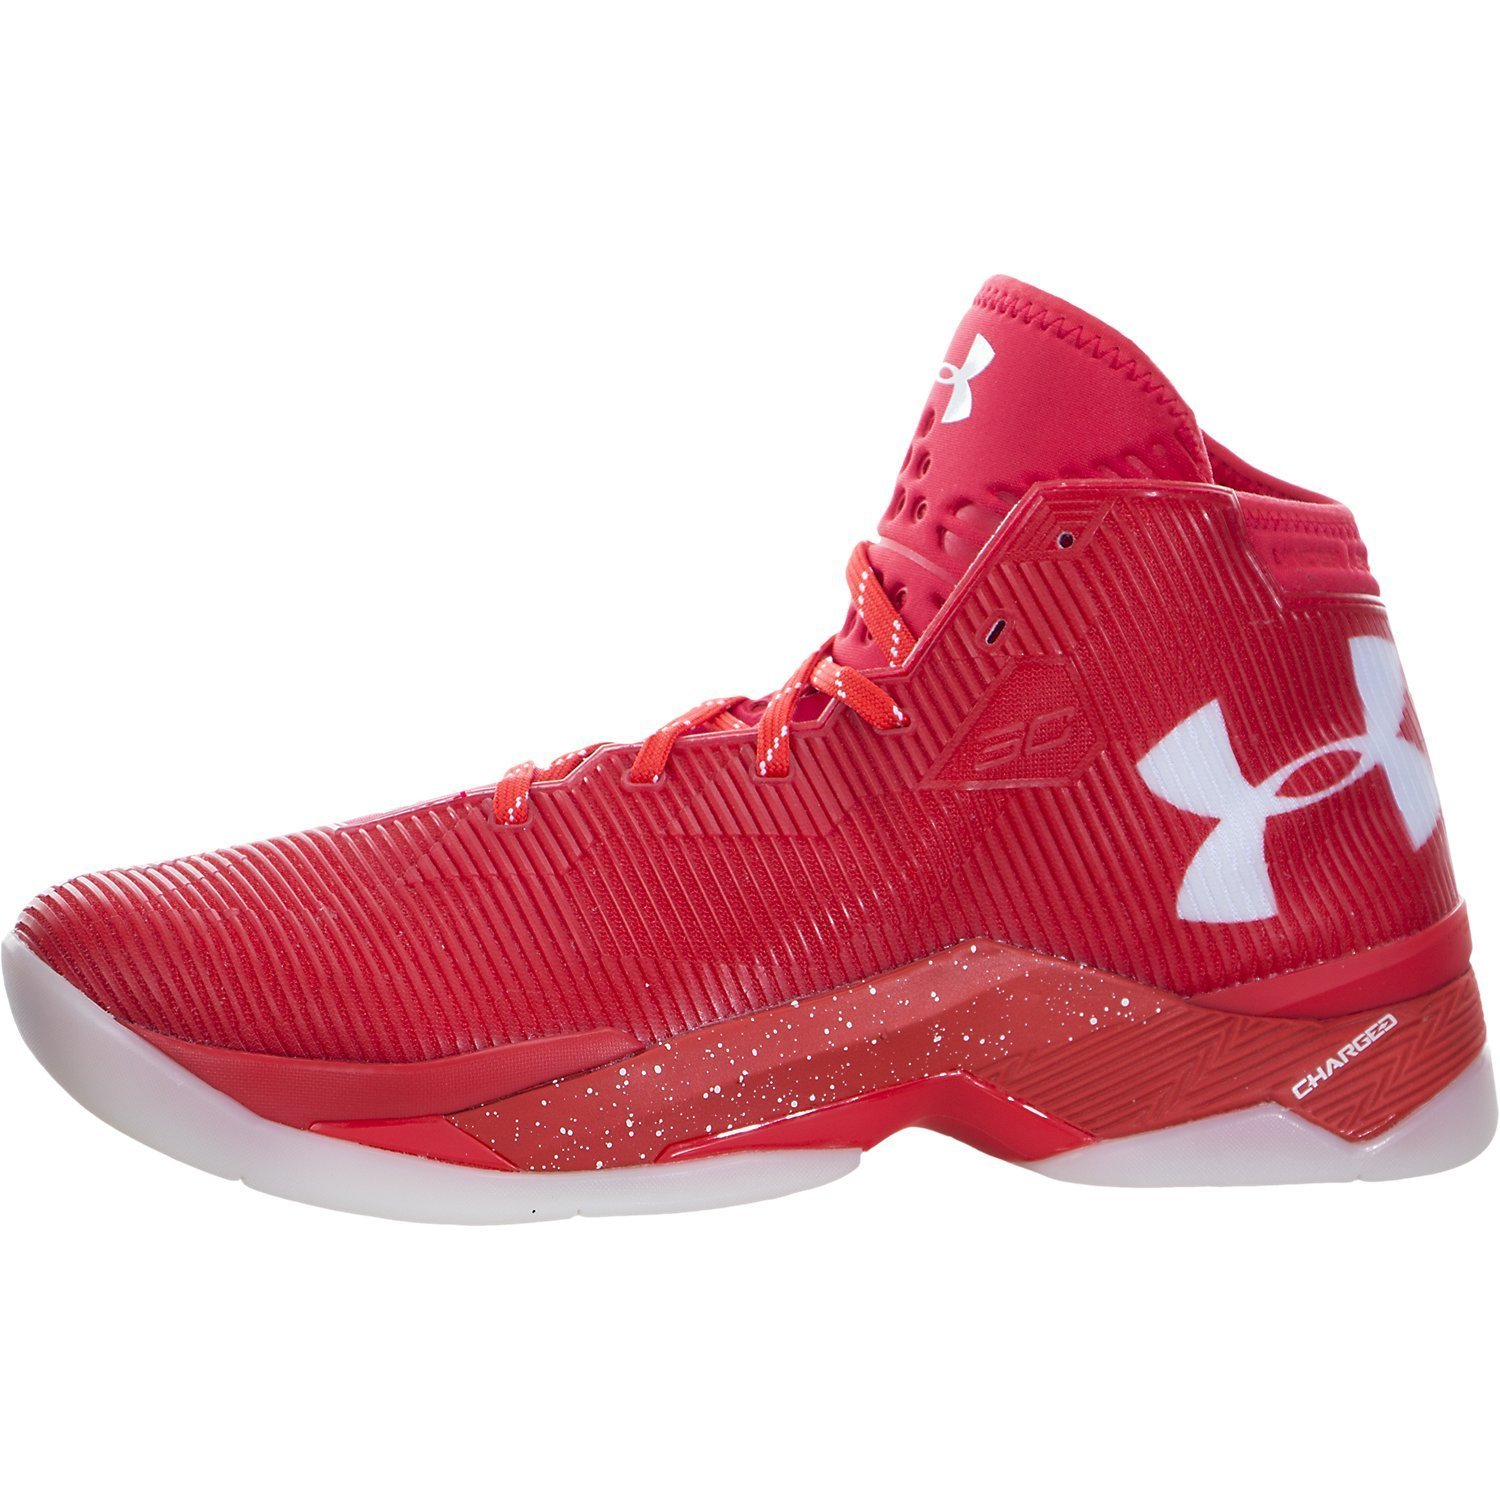 Under Armour Curry 2.5 B01M13WPCD 9.5 D(M) US